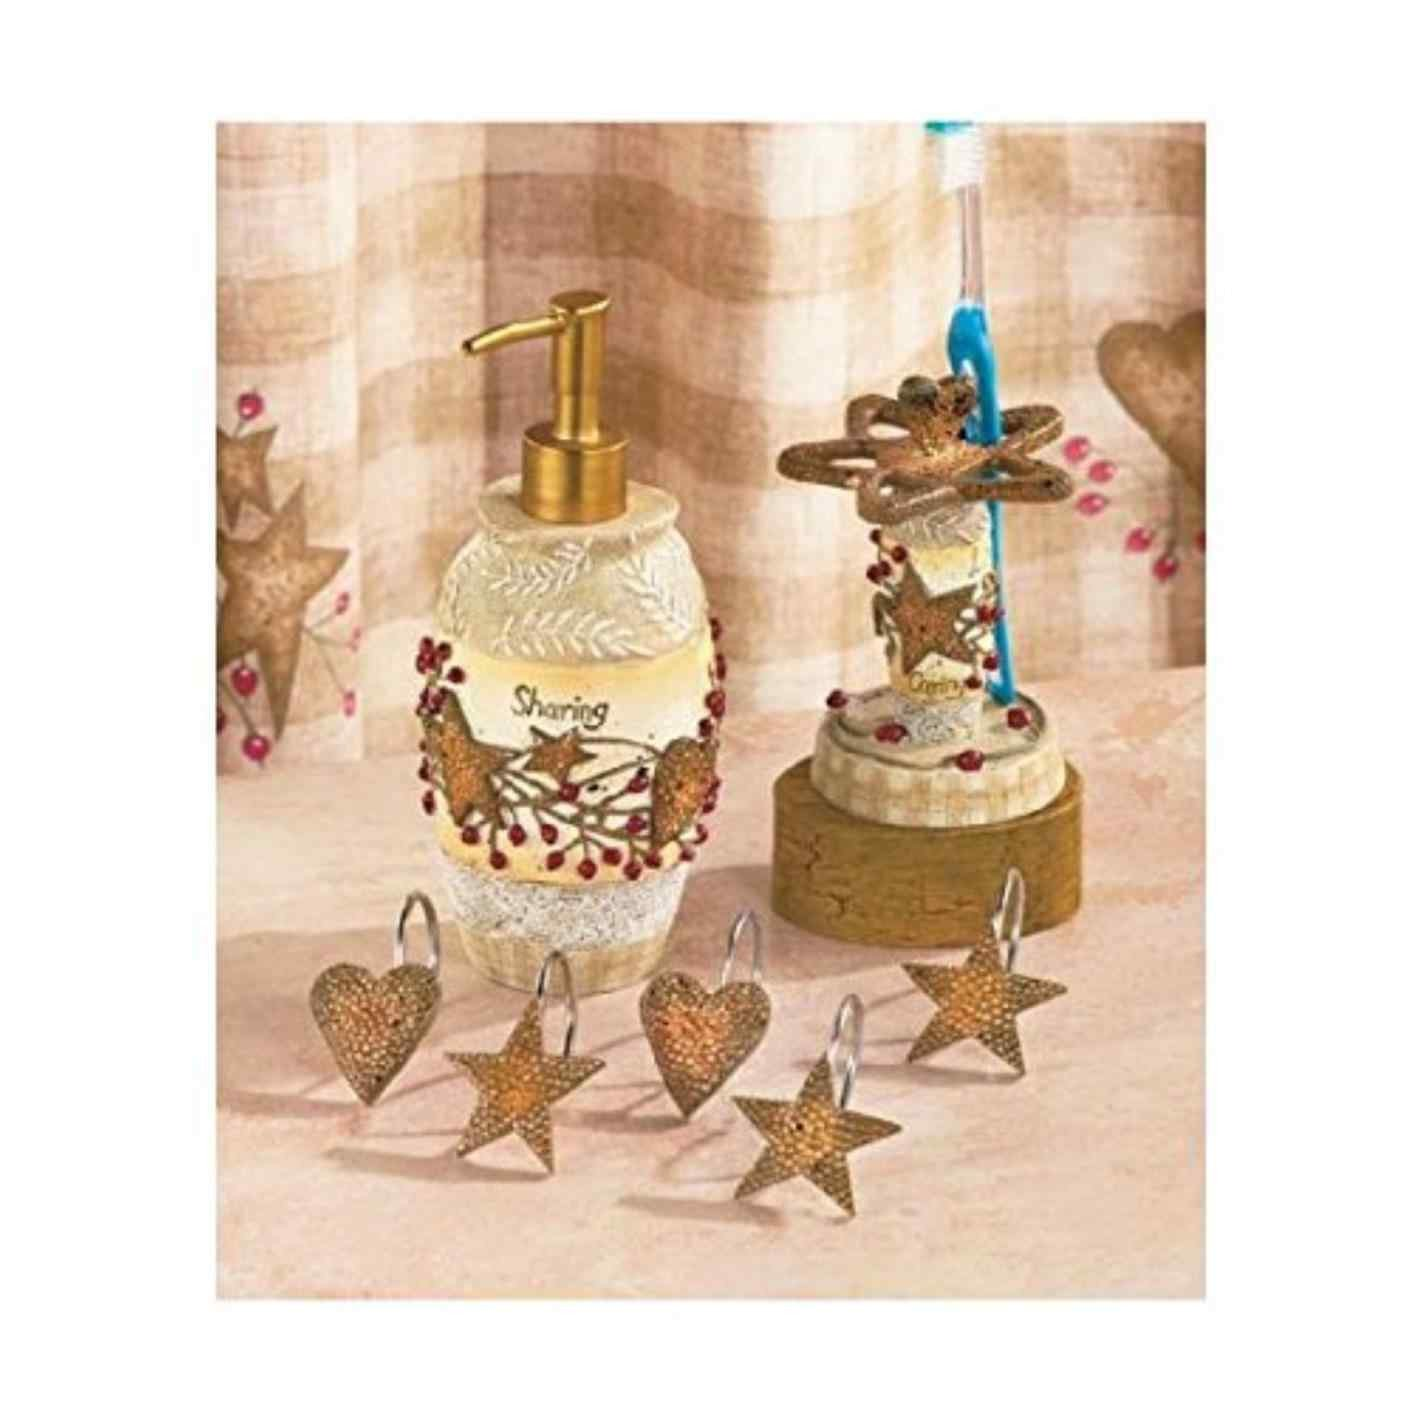 Heart and Star Kitchen Decor New Linda Spivey Hearts and Stars Kitchen Decor